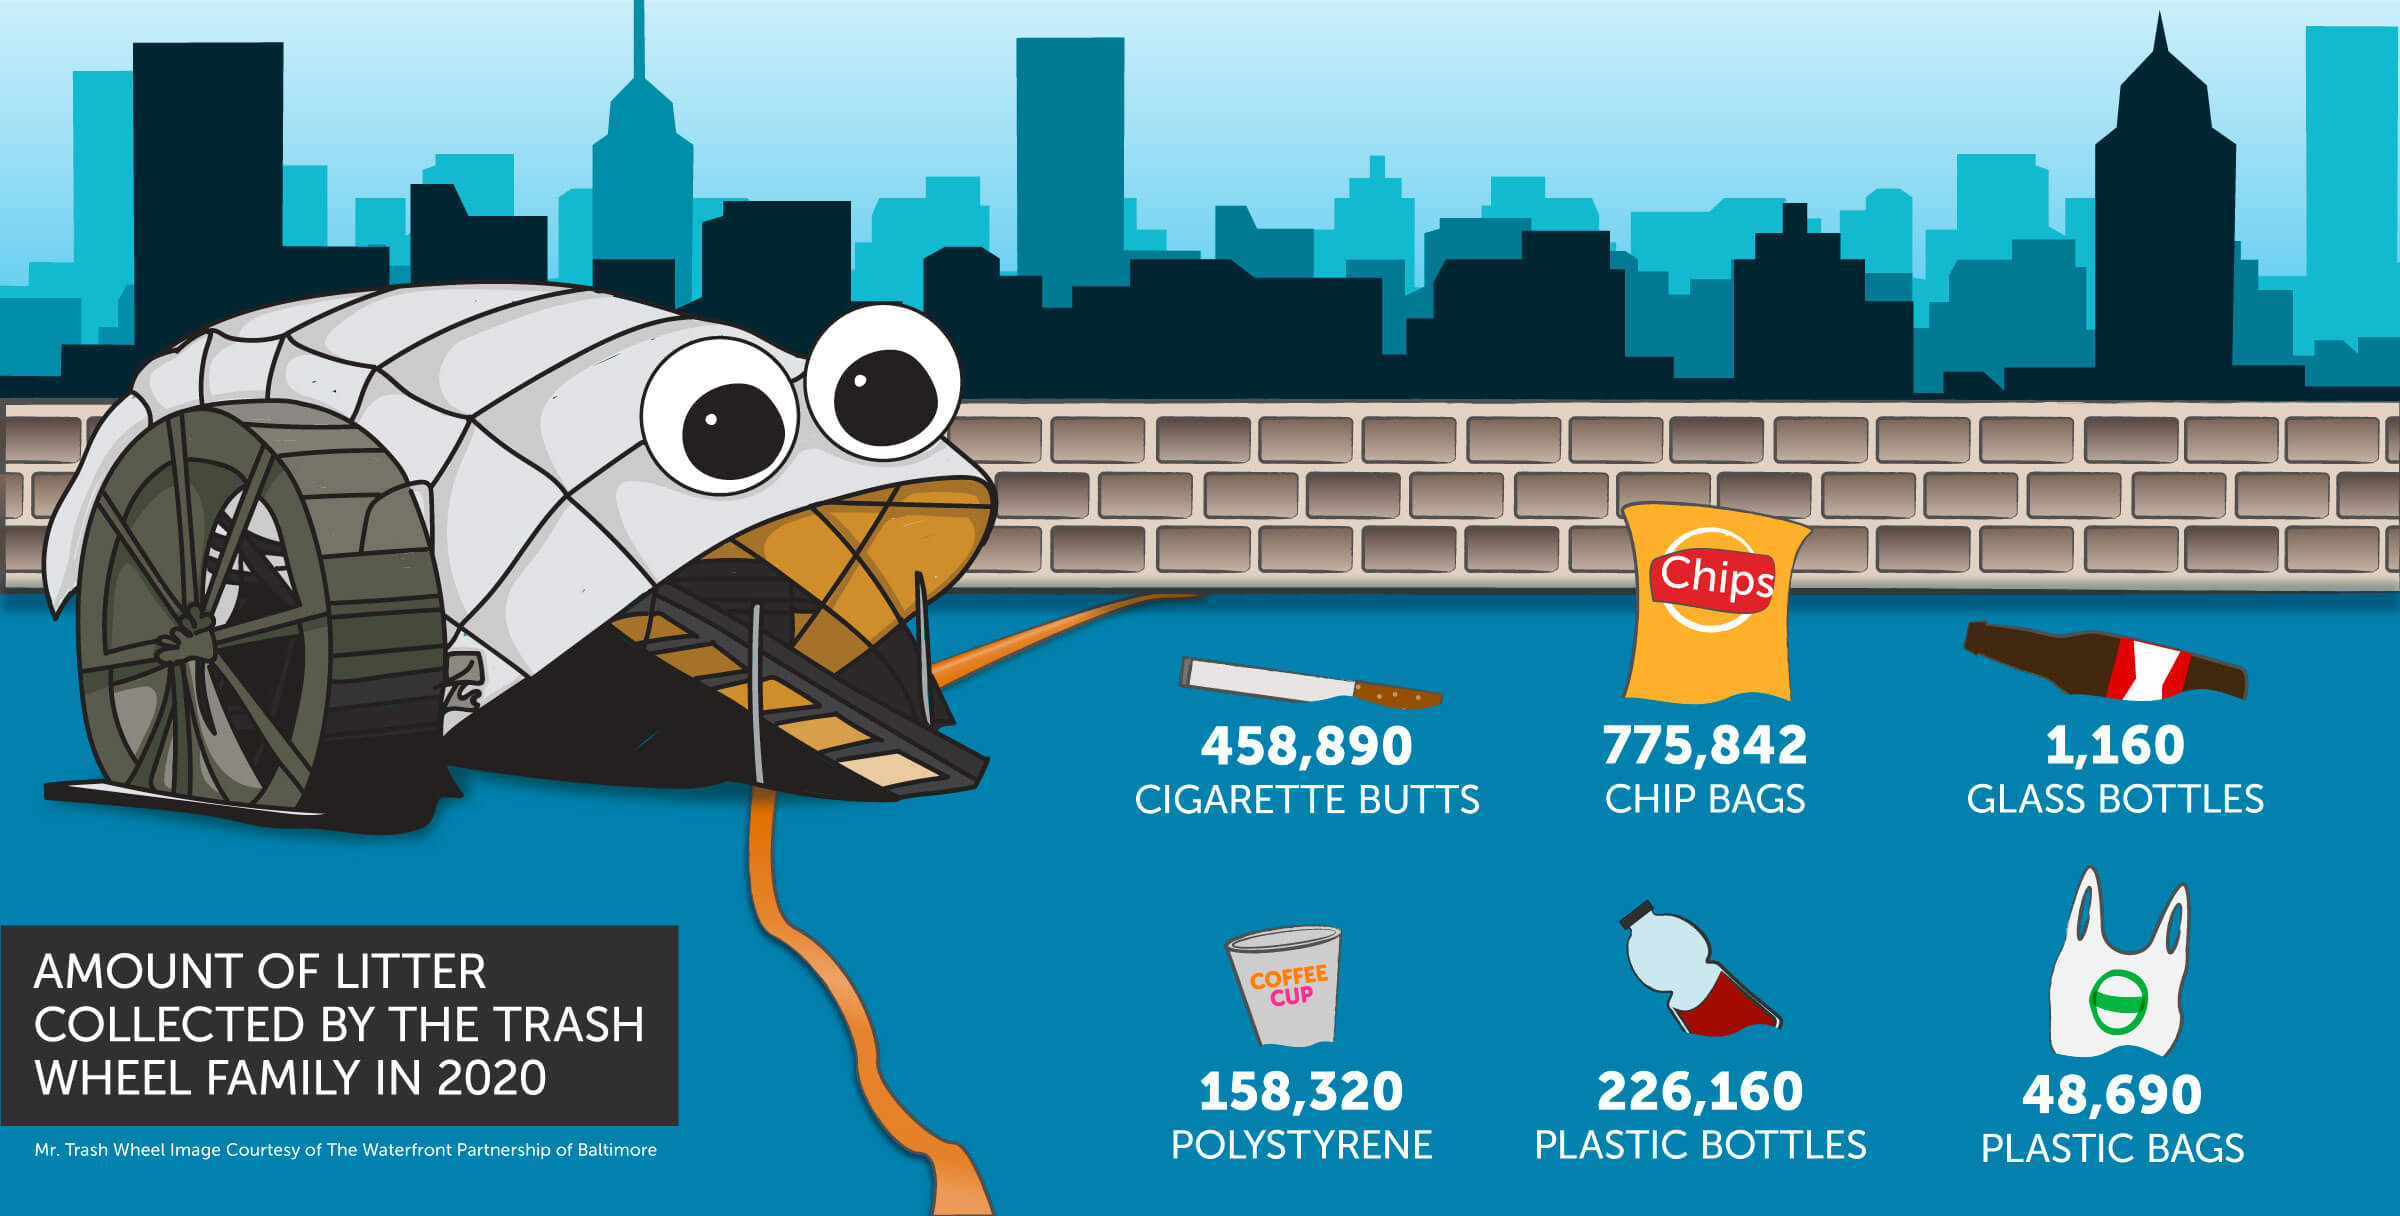 In 2017, Mr. Trash Wheel collected 699,000 cigarette butts; 123,040 chip bags; 1,130 glass bottles; 104,410 polystyrene; 109,880